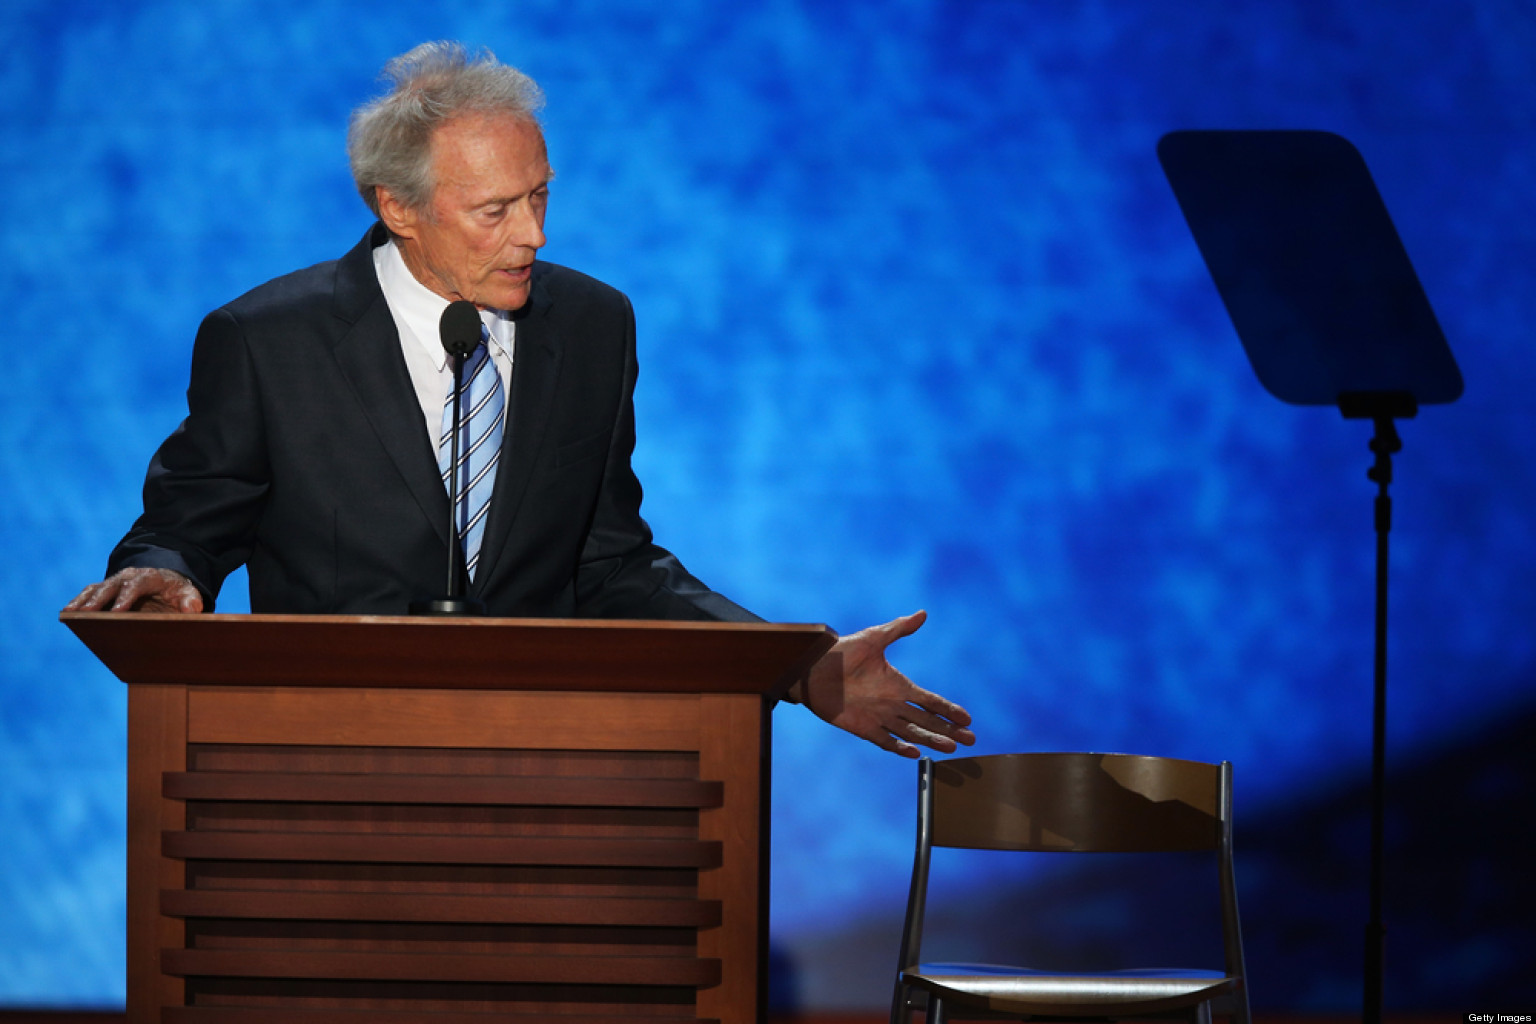 IMAGE(http://i.huffpost.com/gen/1167376/images/o-CLINT-EASTWOOD-EMPTY-CHAIR-facebook.jpg)